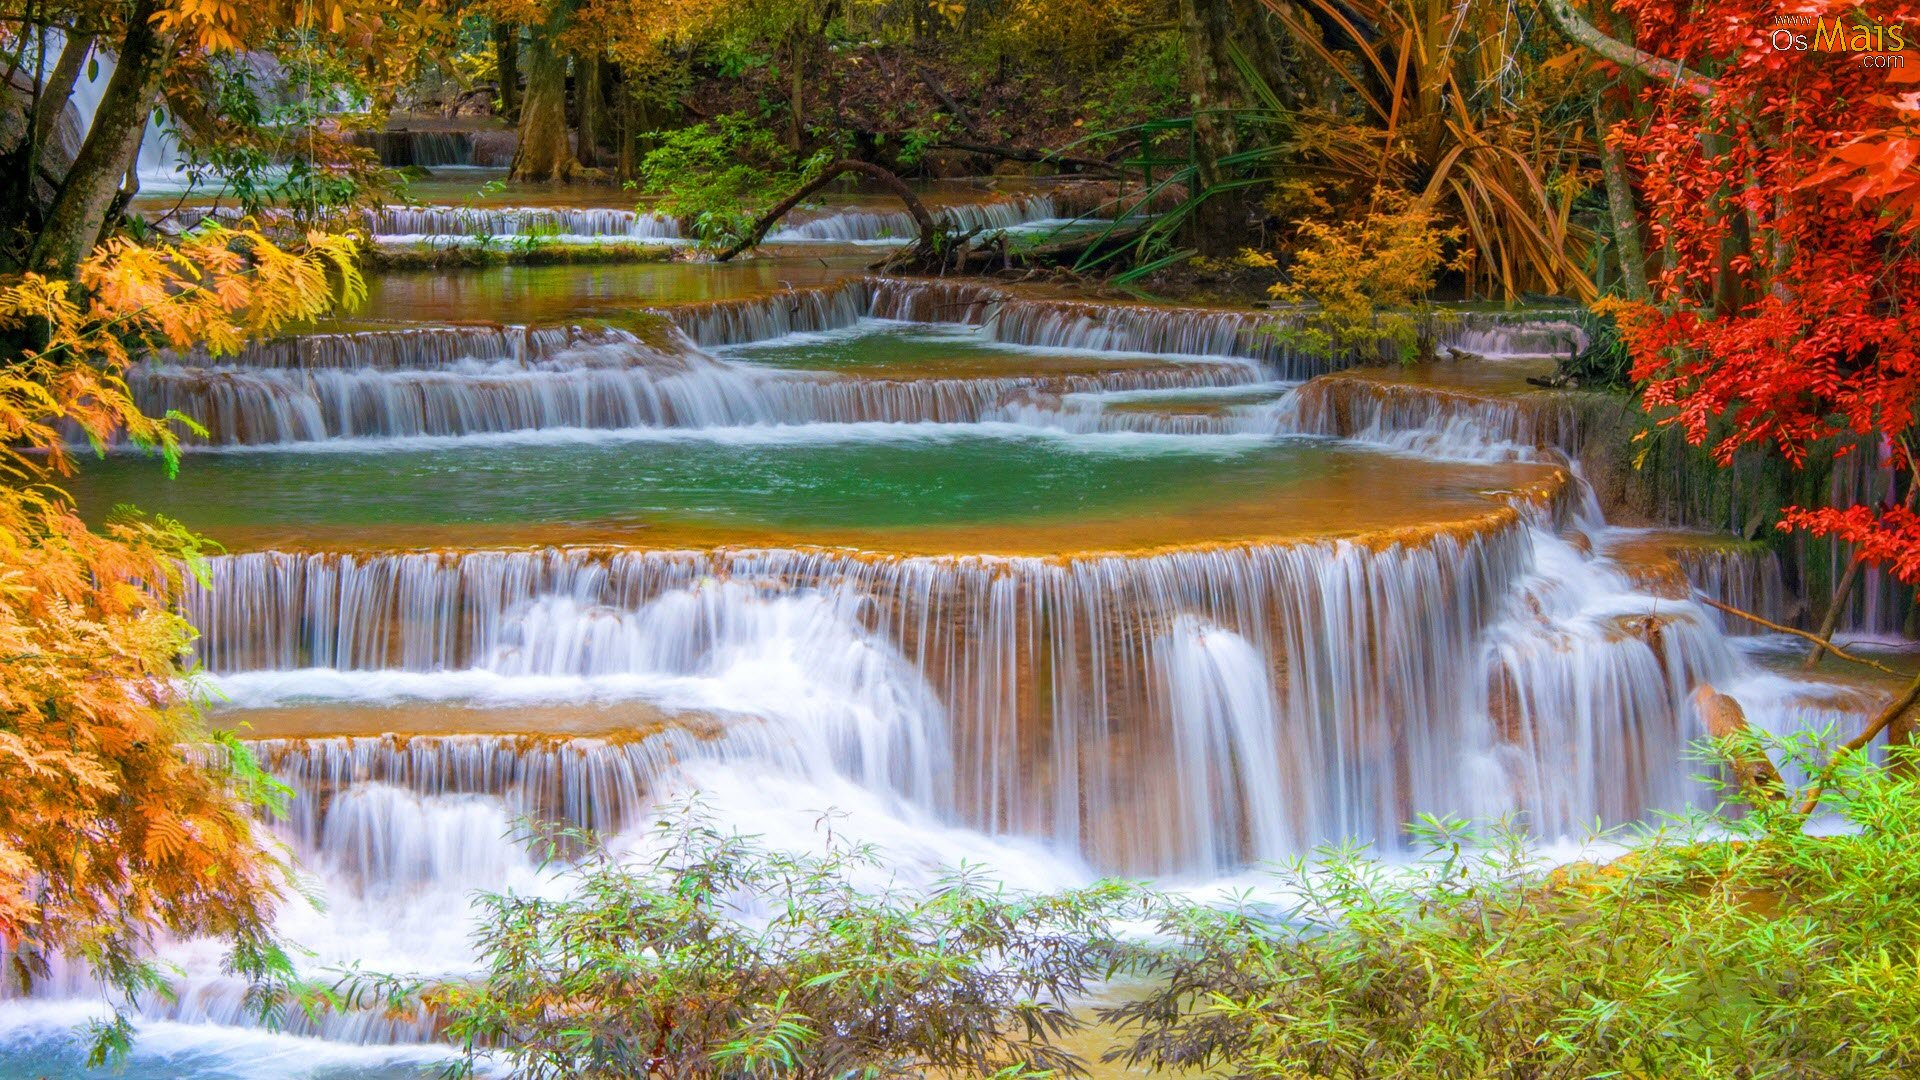 http://www.osmais.com/wallpapers/201508/cachoeira-outono-wallpaper.jpg